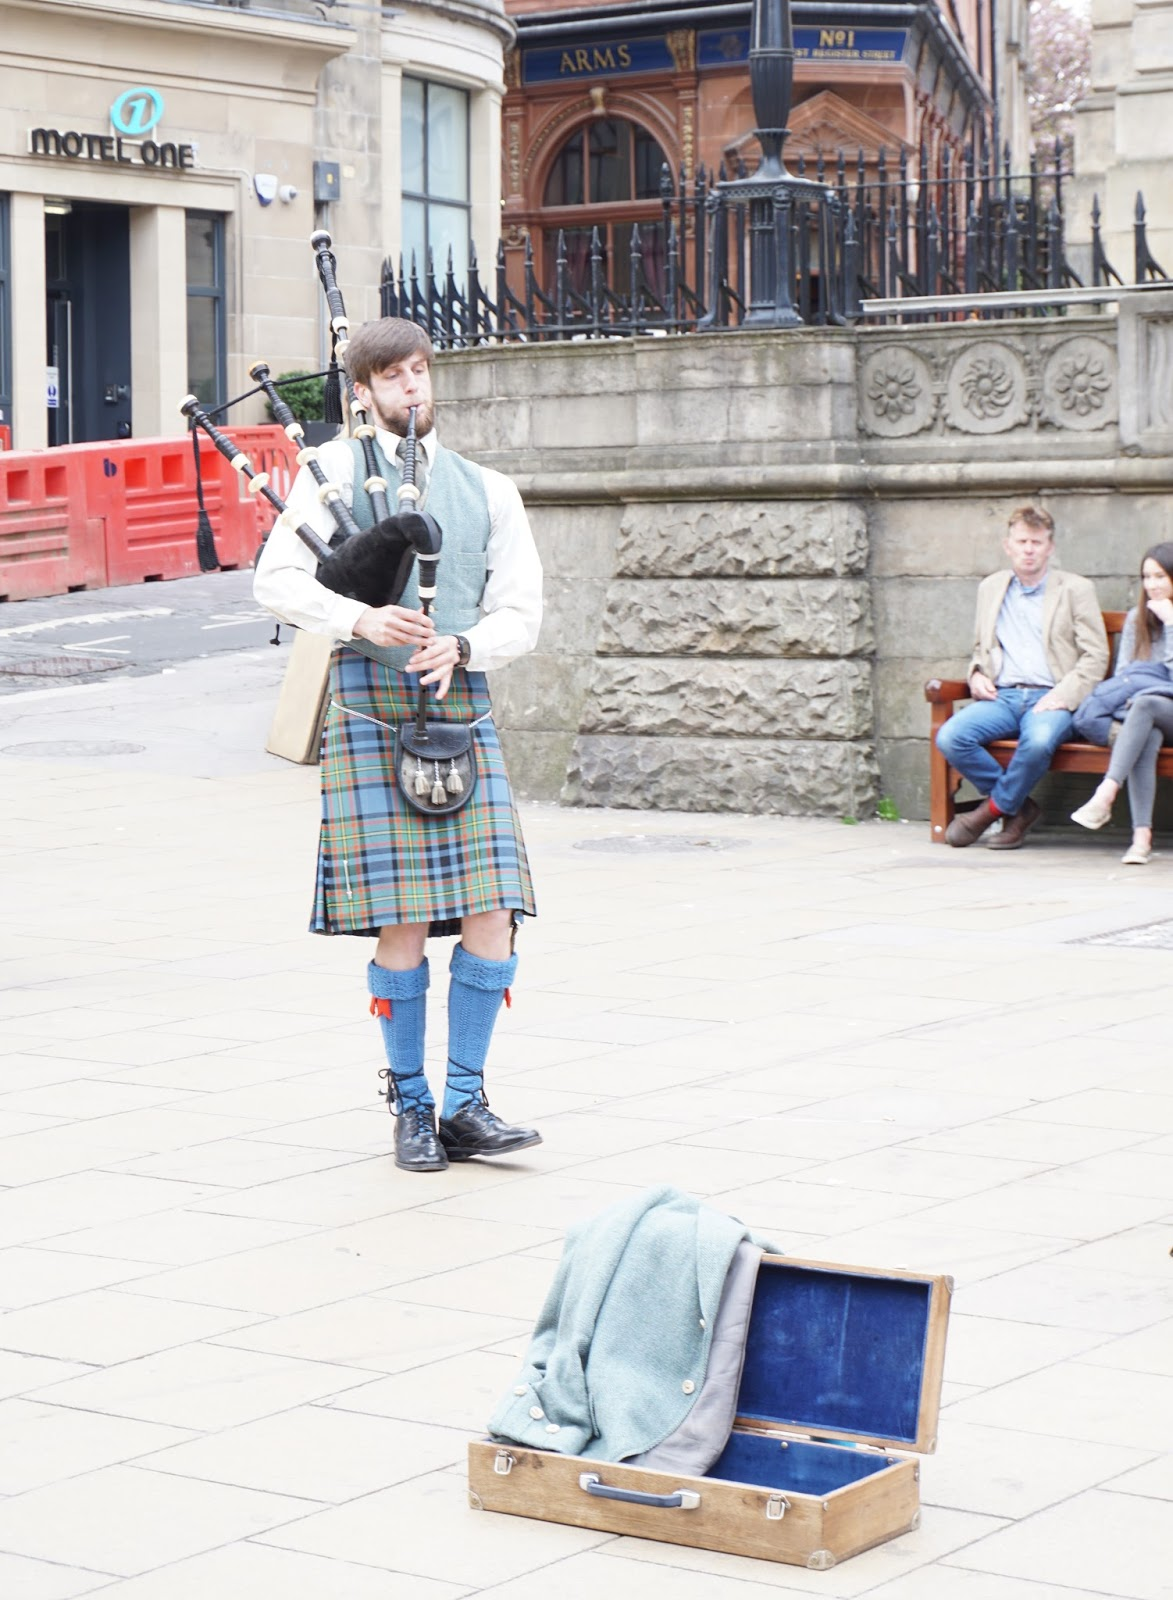 Bagpipes player Edinburgh